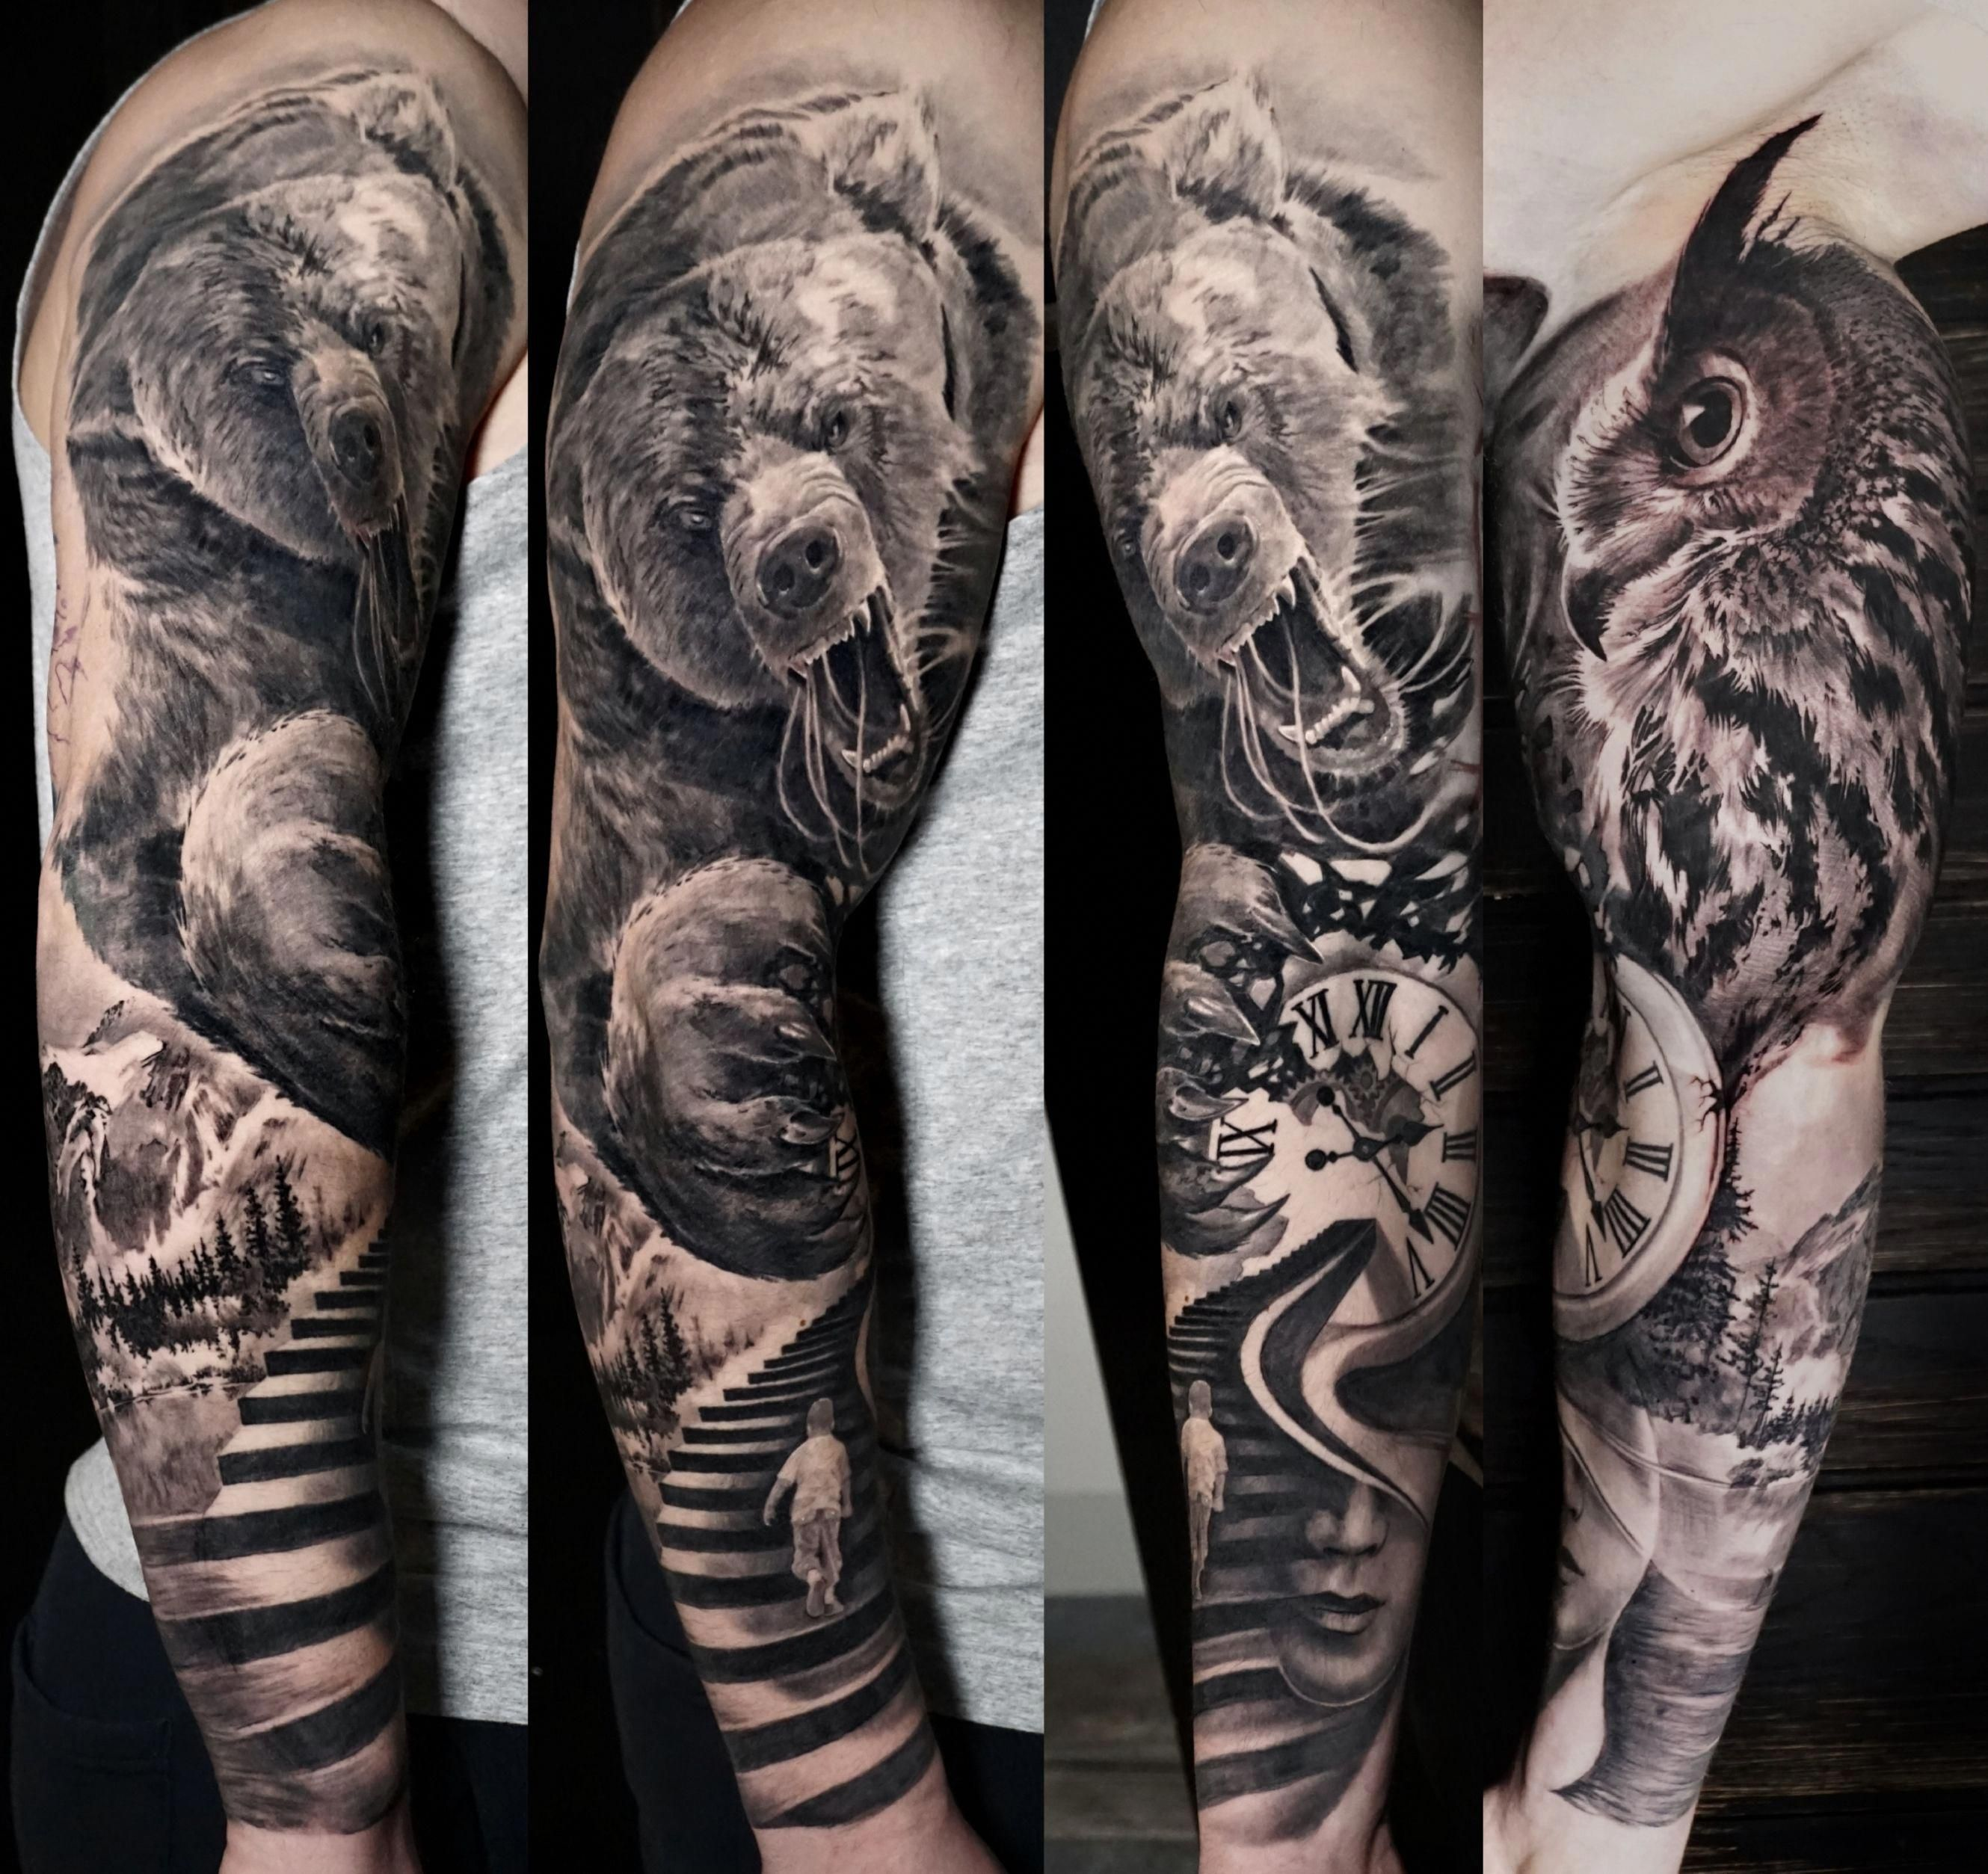 Angry Bear Portrait Tattoo In Black And Grey Realism On Full Sleeve By Alo Loco London Tattoo Artis Black Sleeve Tattoo Full Sleeve Tattoos Half Sleeve Tattoo